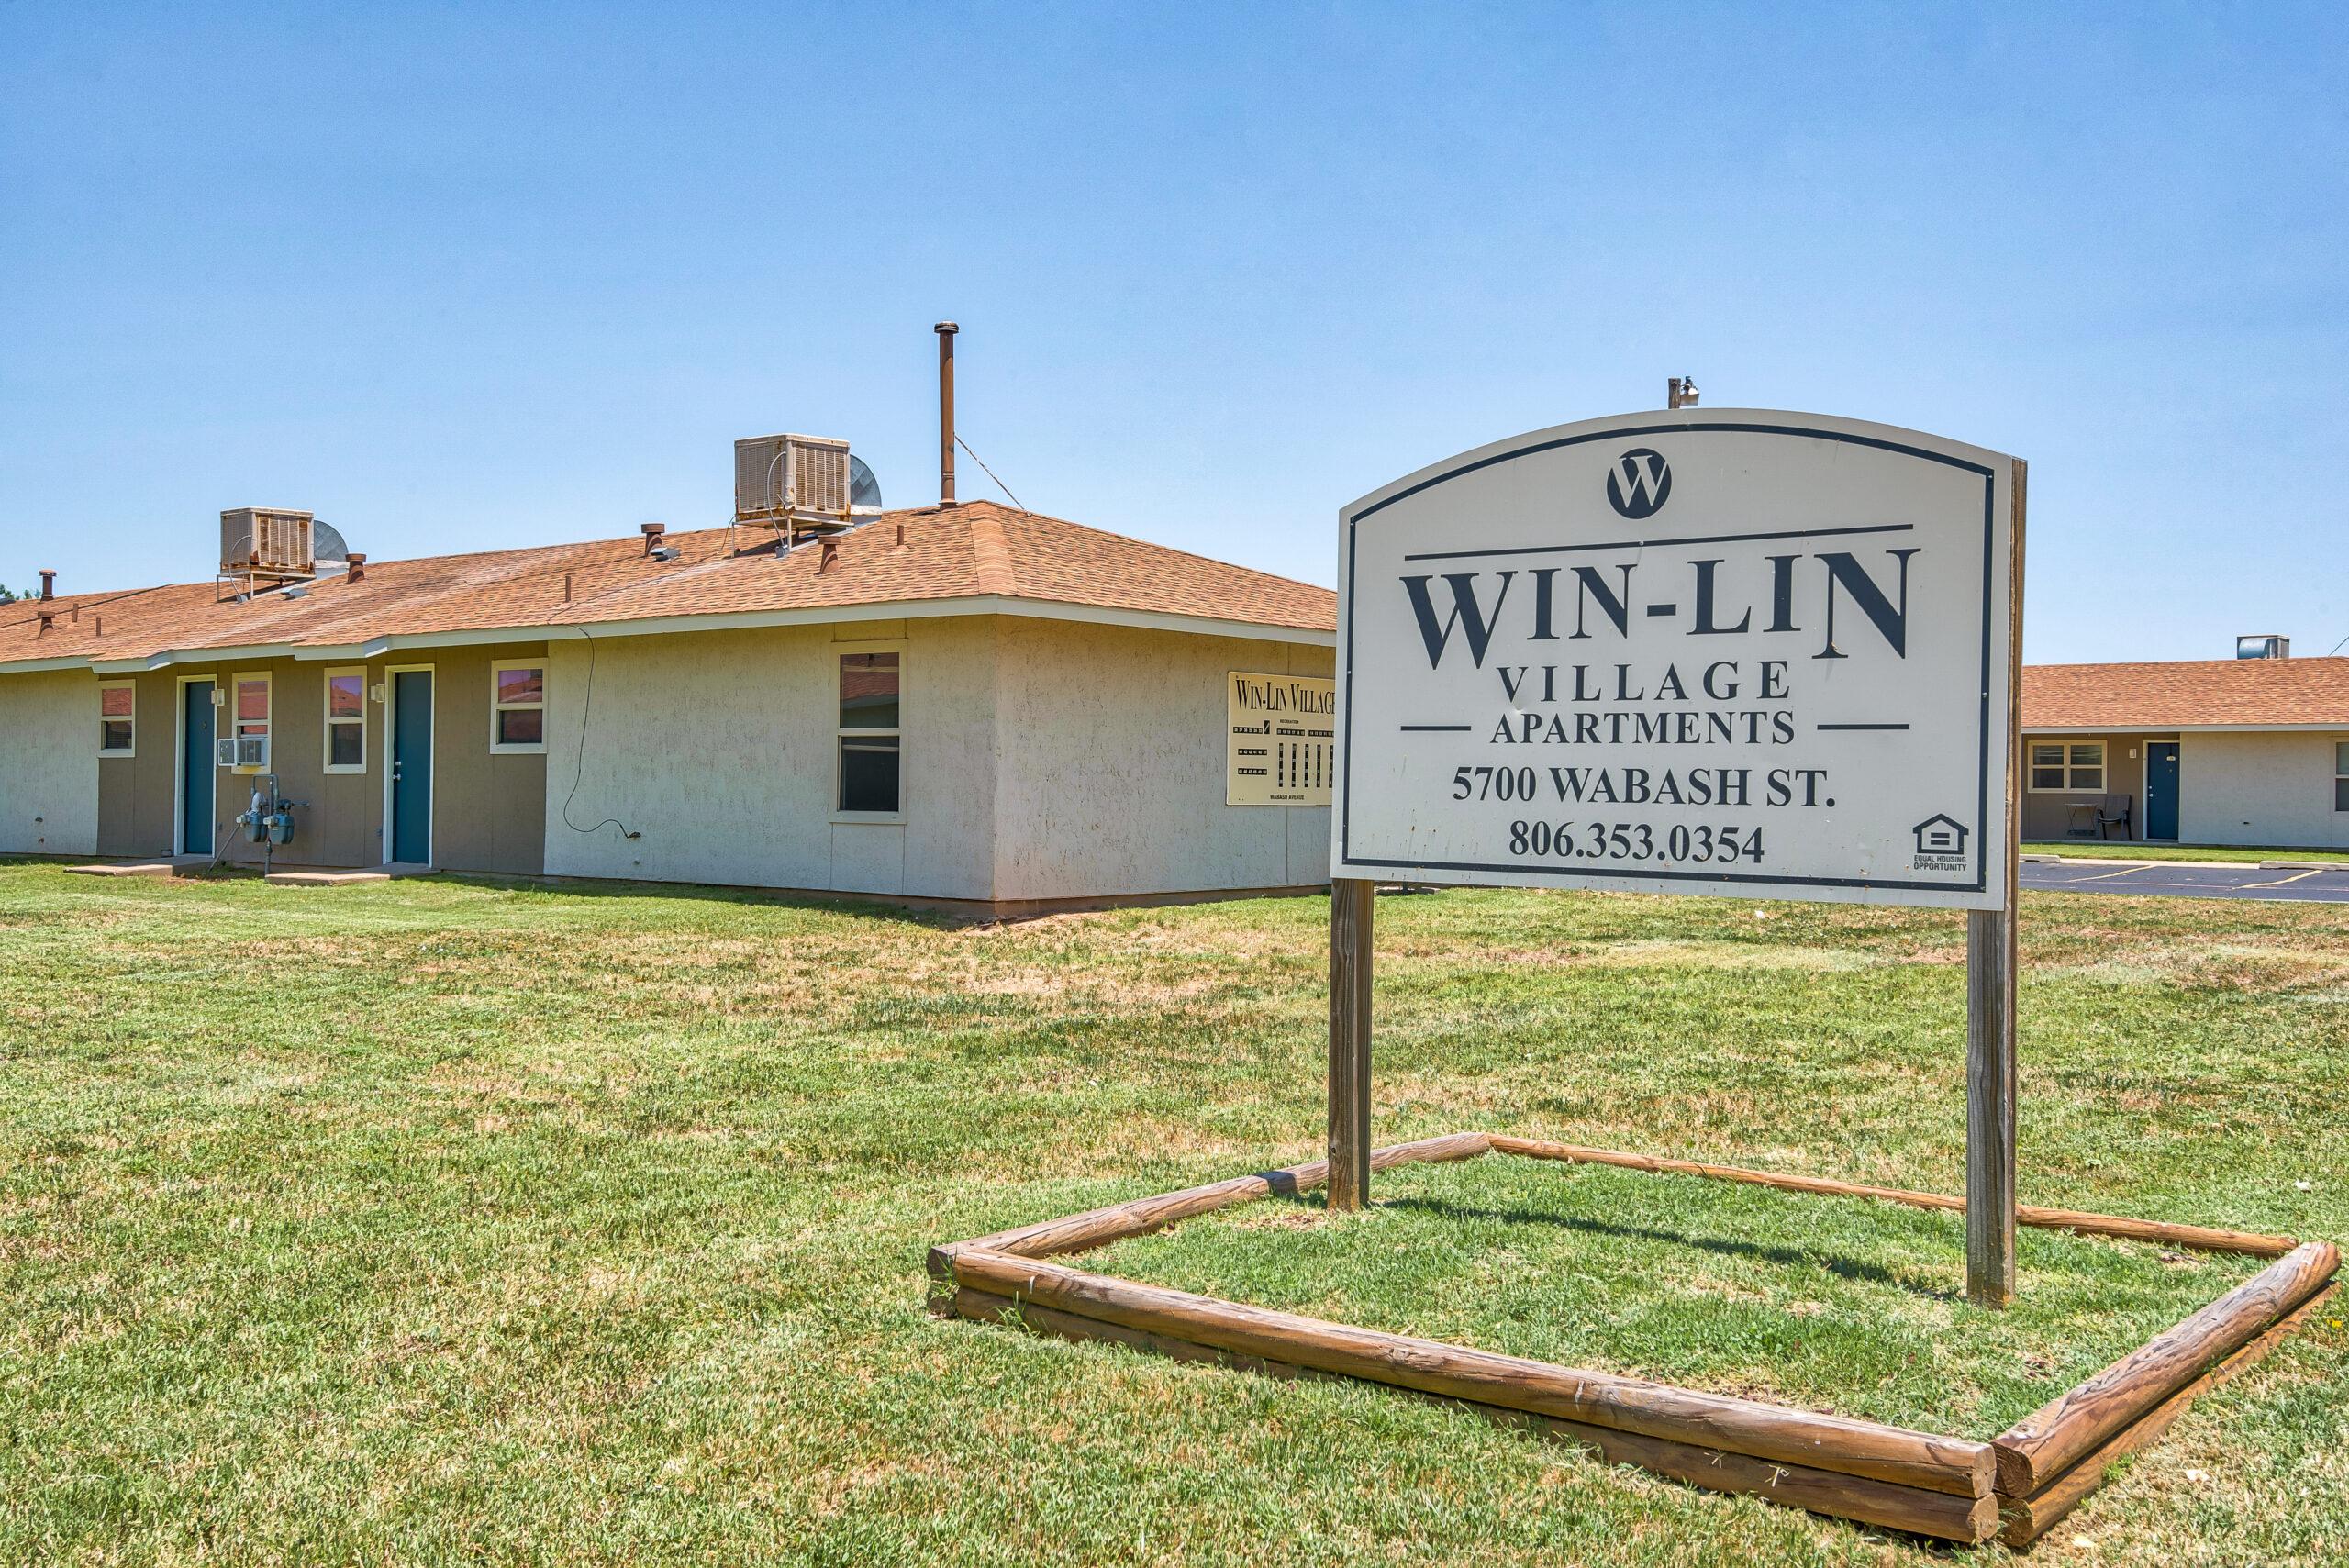 Front-Property-Sign_5700-WABASH-ST-AMARILLO-TX_WIN-LIN-VILLAGE_RPI_II-315392-13